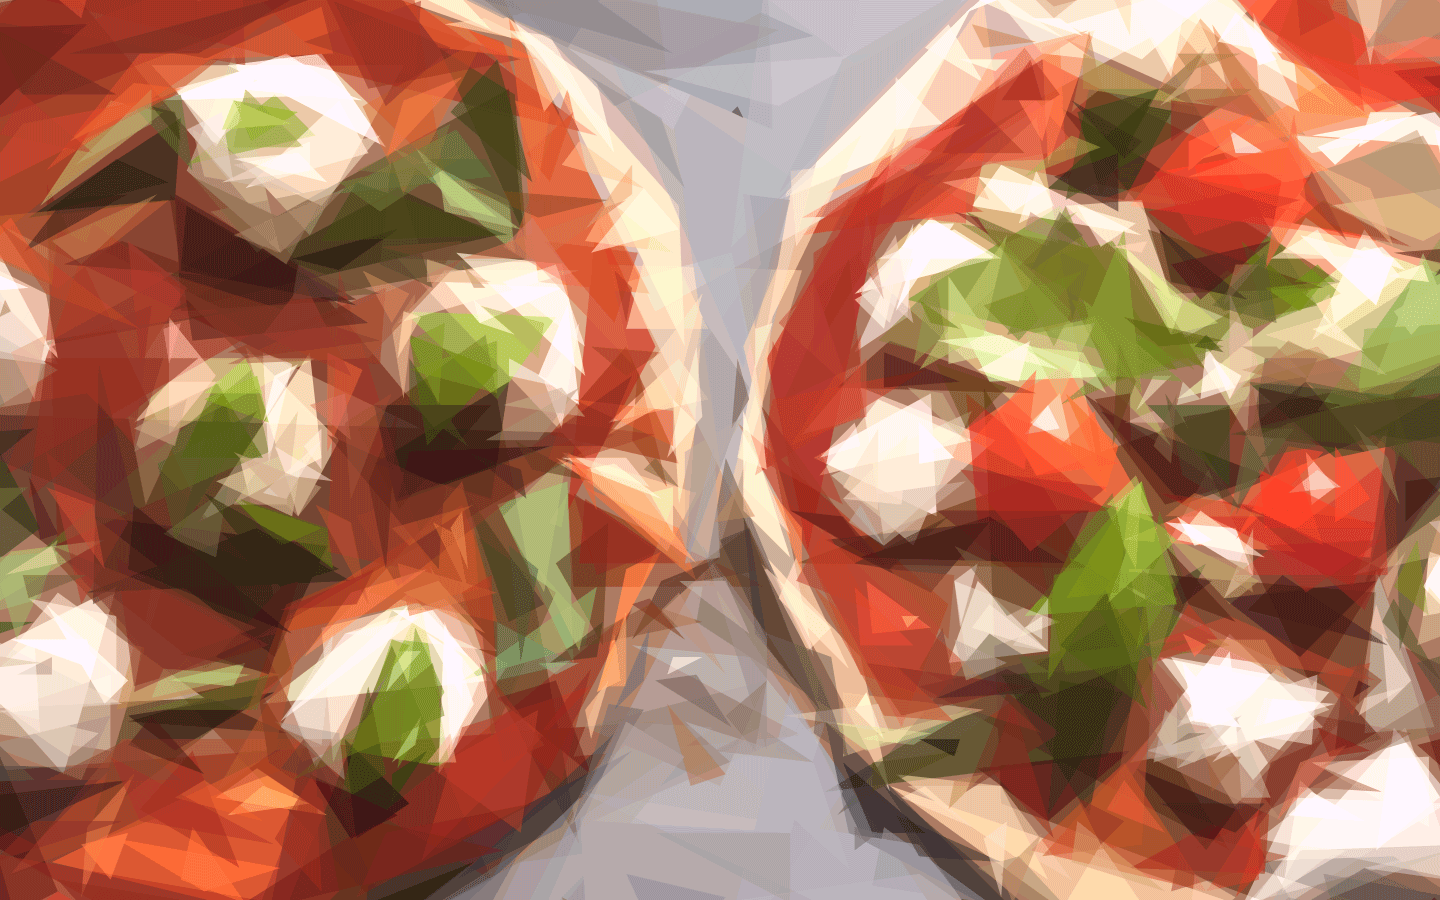 files/57437b6c-cdc0-4377-9fe4-8669ed955092/two-pizza-rule.png